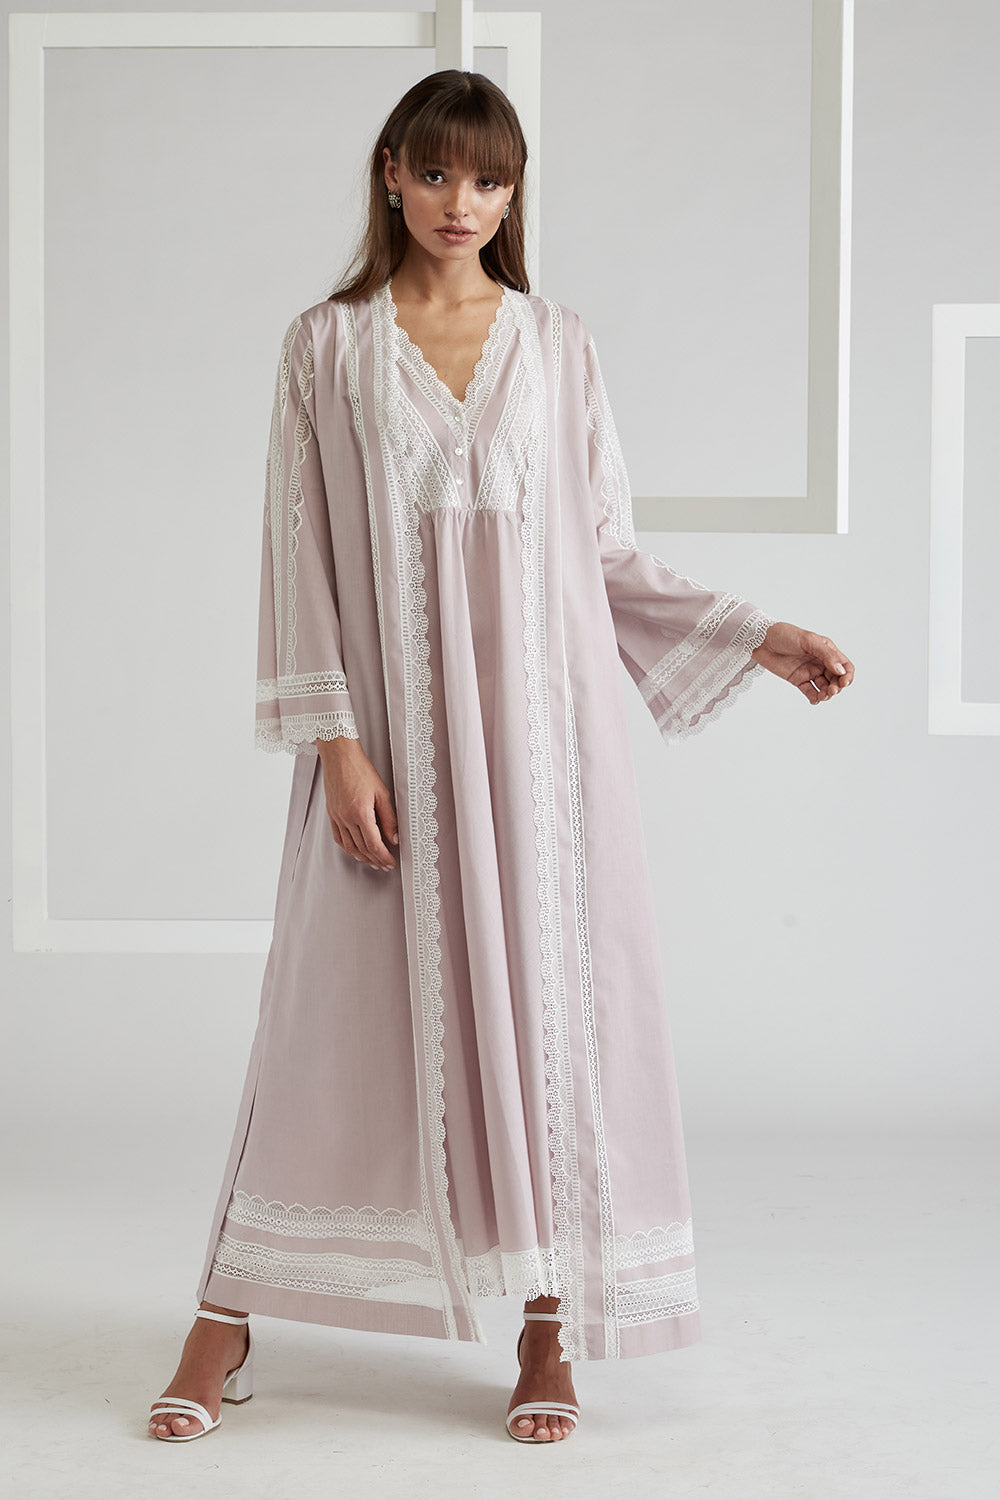 Voile Powder Robe Set- Lady Sheer